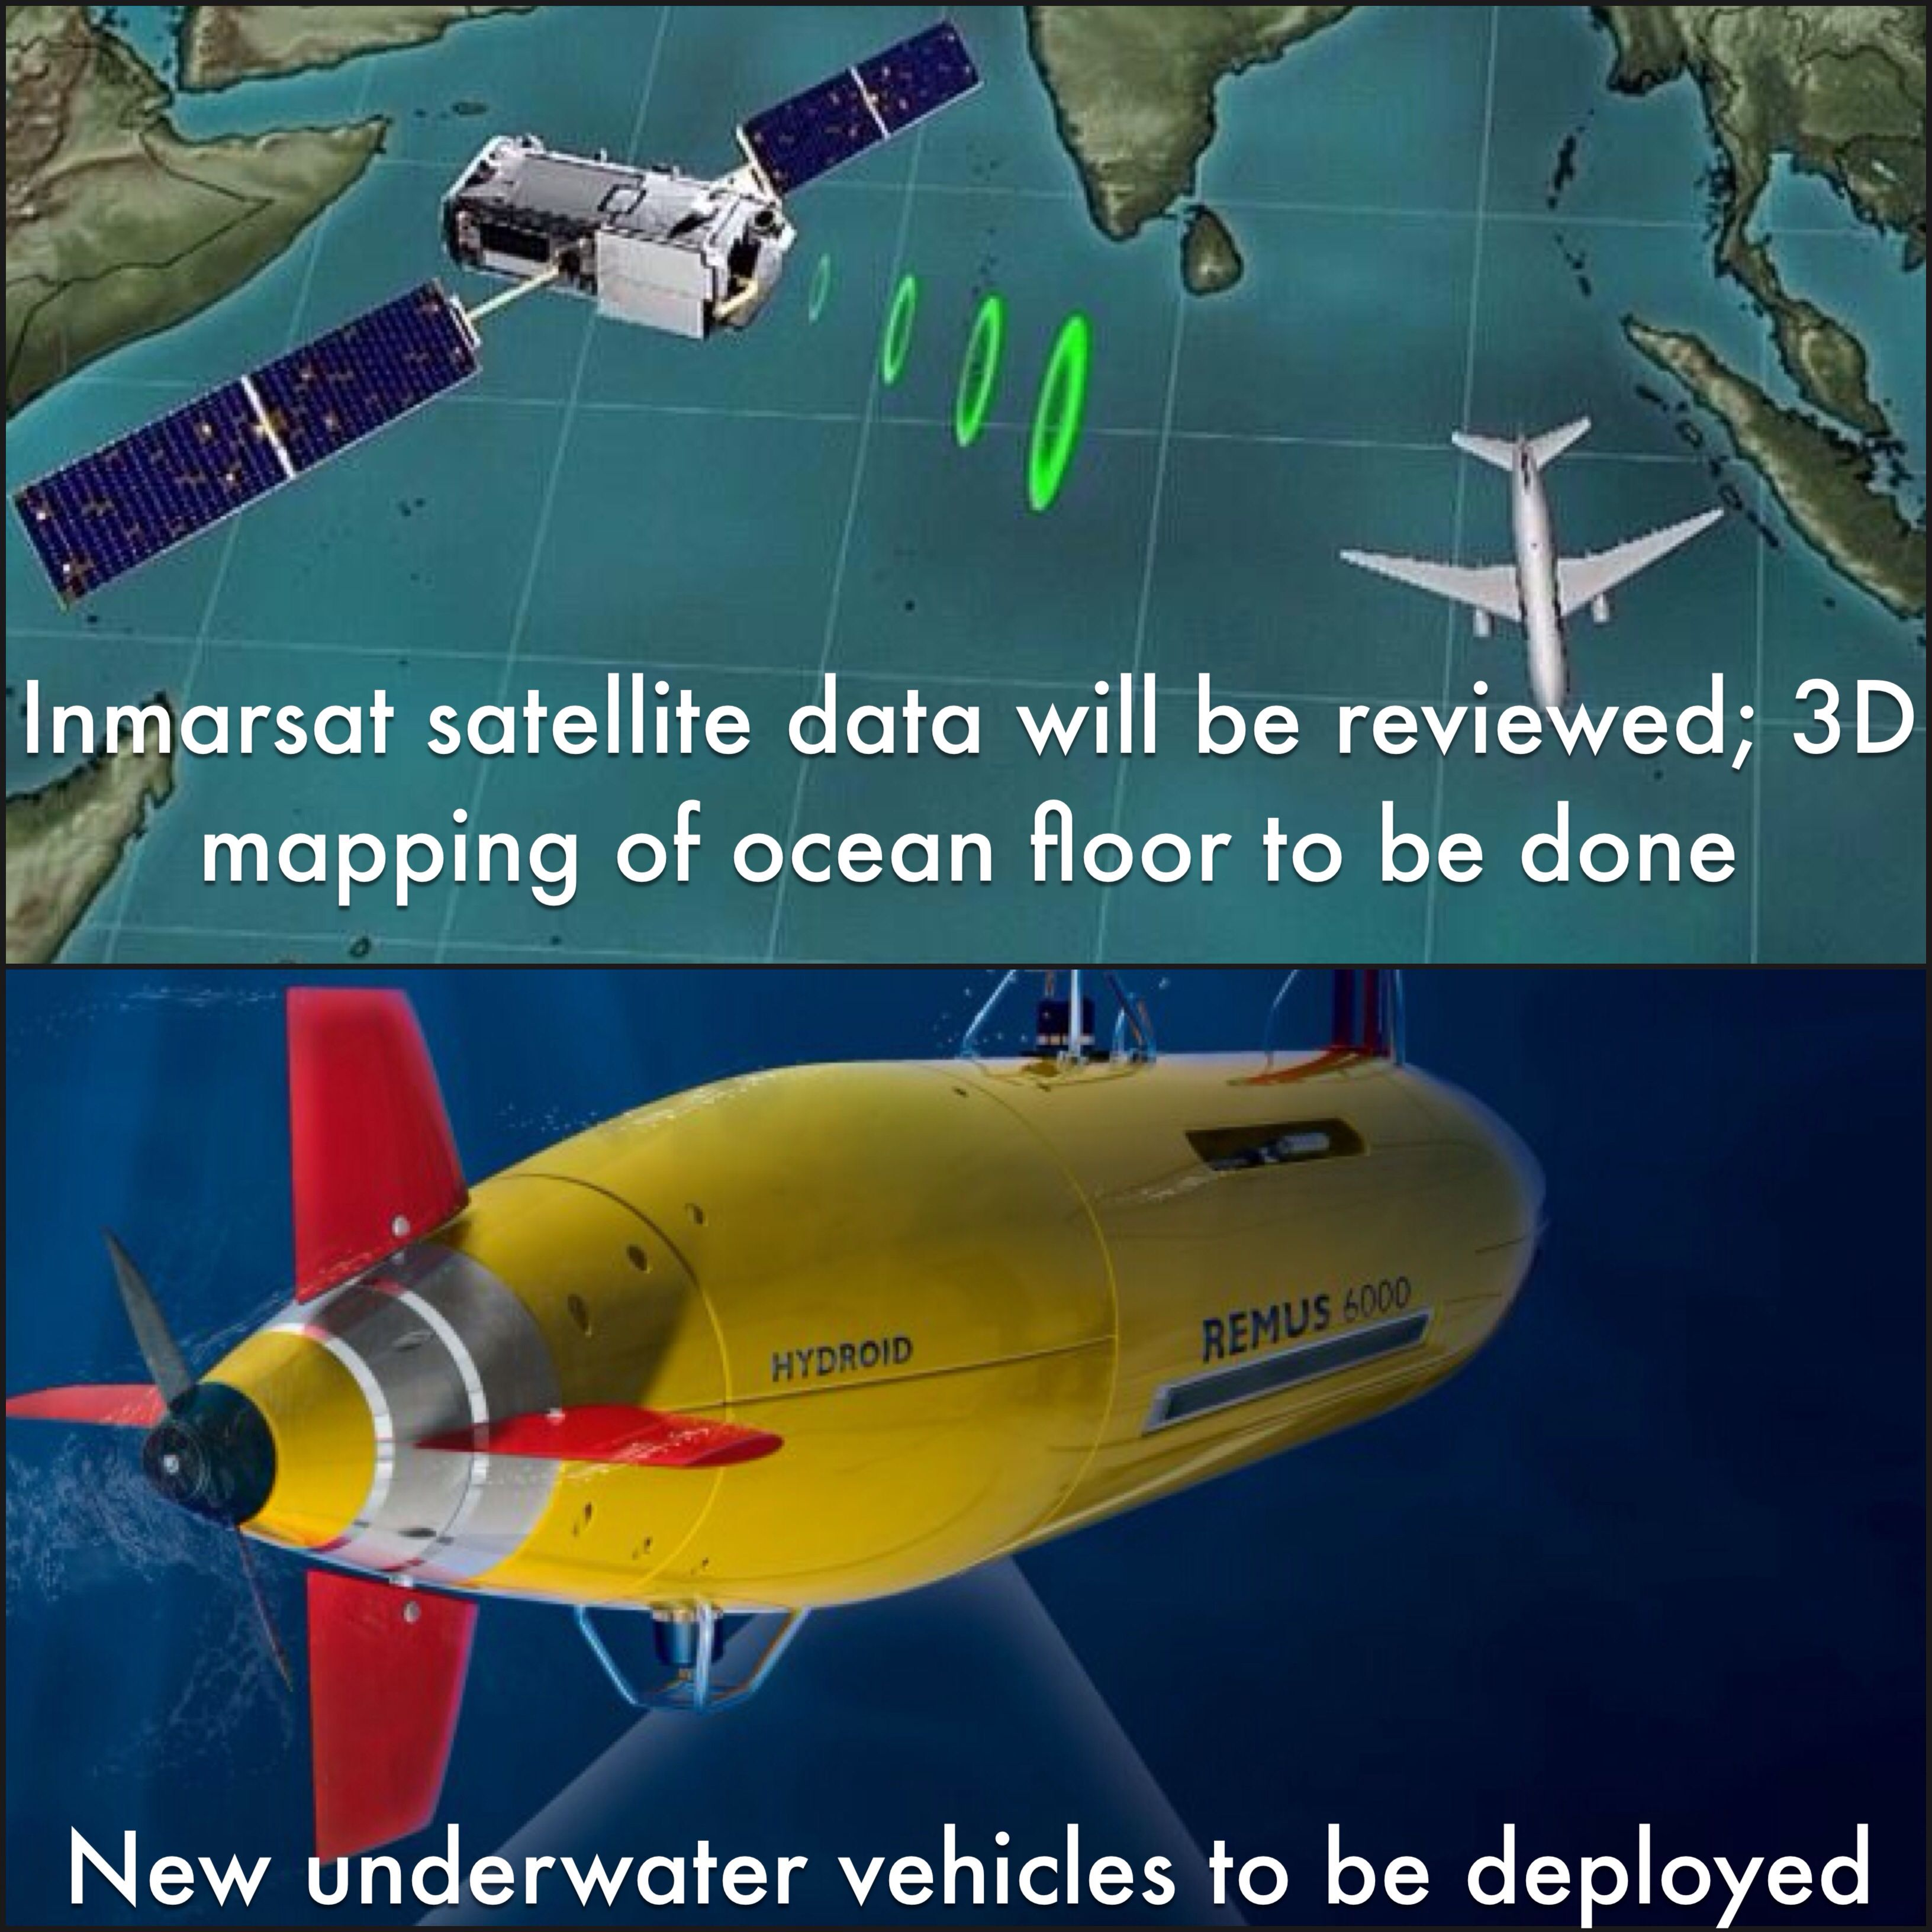 MH370 Search Next phase resumes in August when new